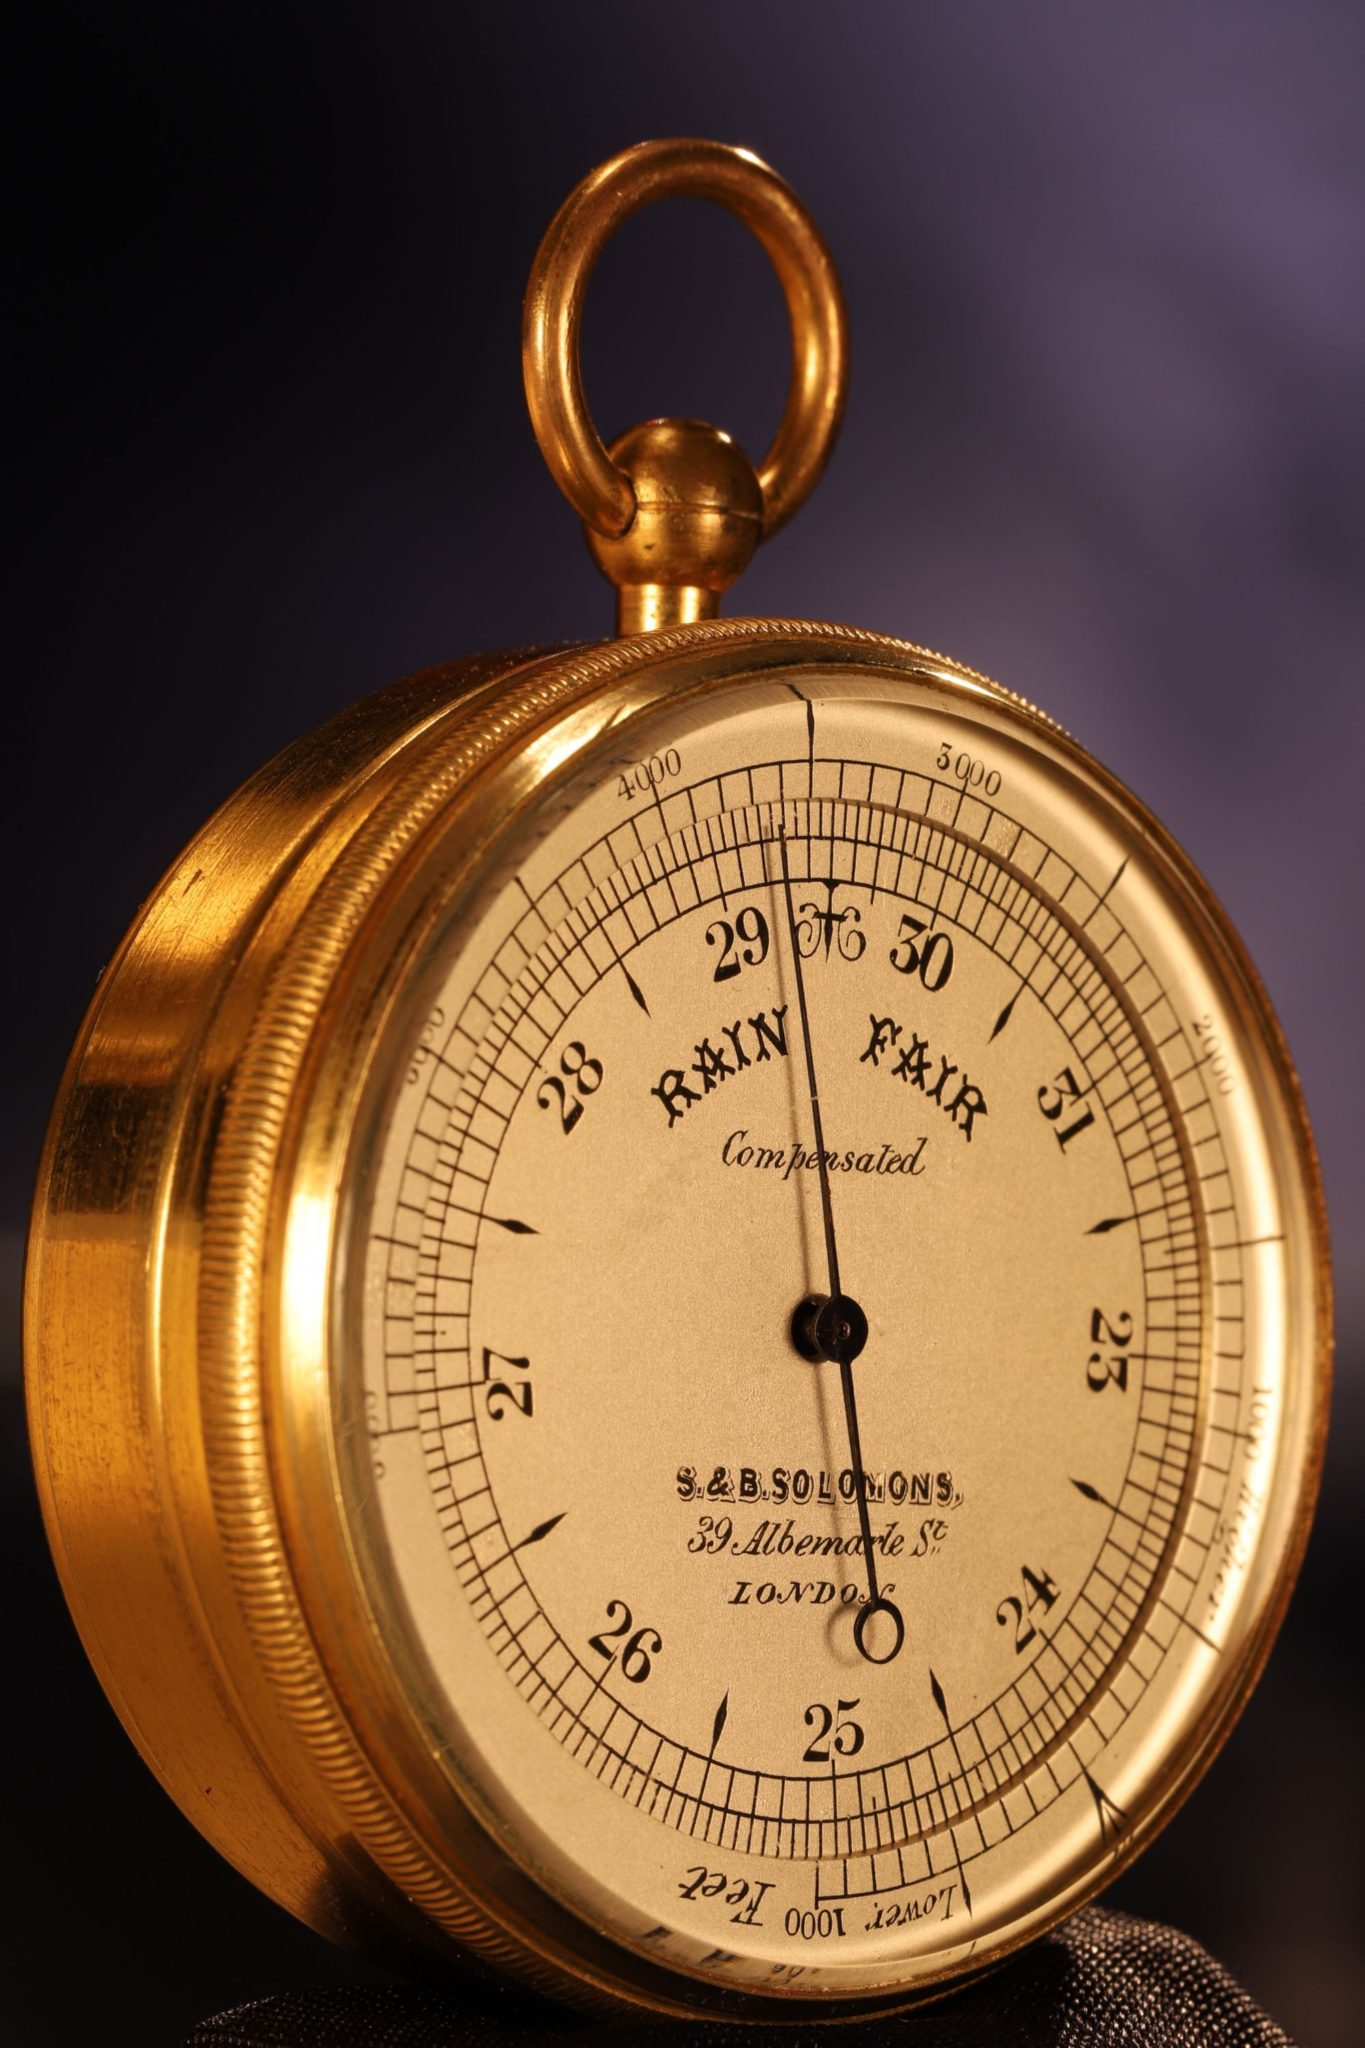 Image of Pocket Barometer Compendium by Callaghan Retailed by Solomon c1865